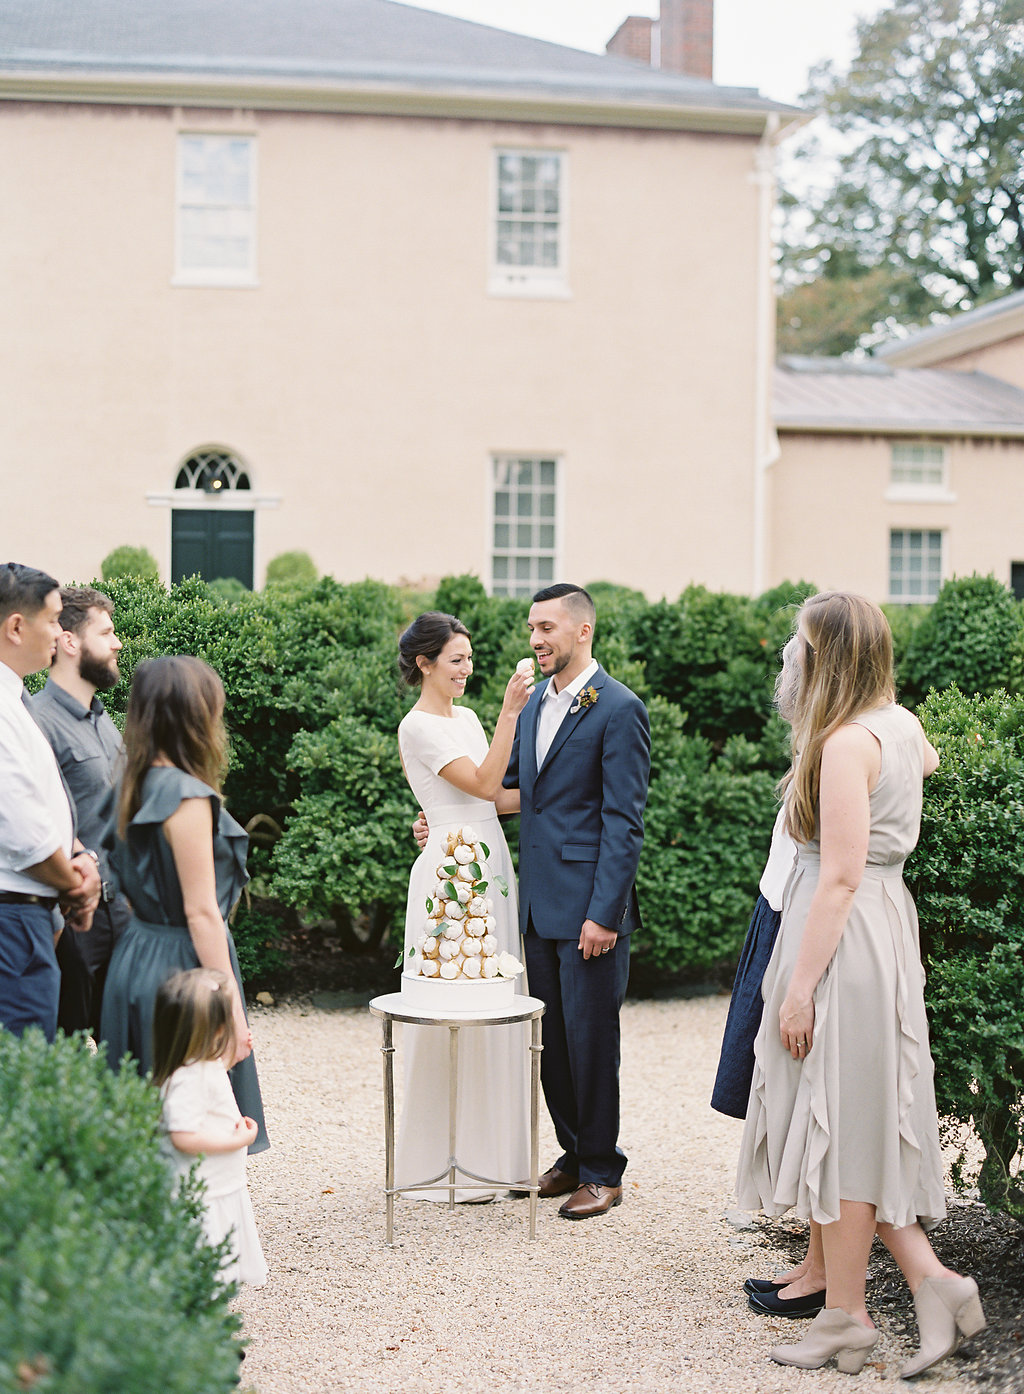 French Inspired Fall Wedding with Fine Art Destination Wedding Planner East Made Event Company and DC Film Photographer Vicki Grafton Photography at Tudor Place in Washington DC-148.jpg